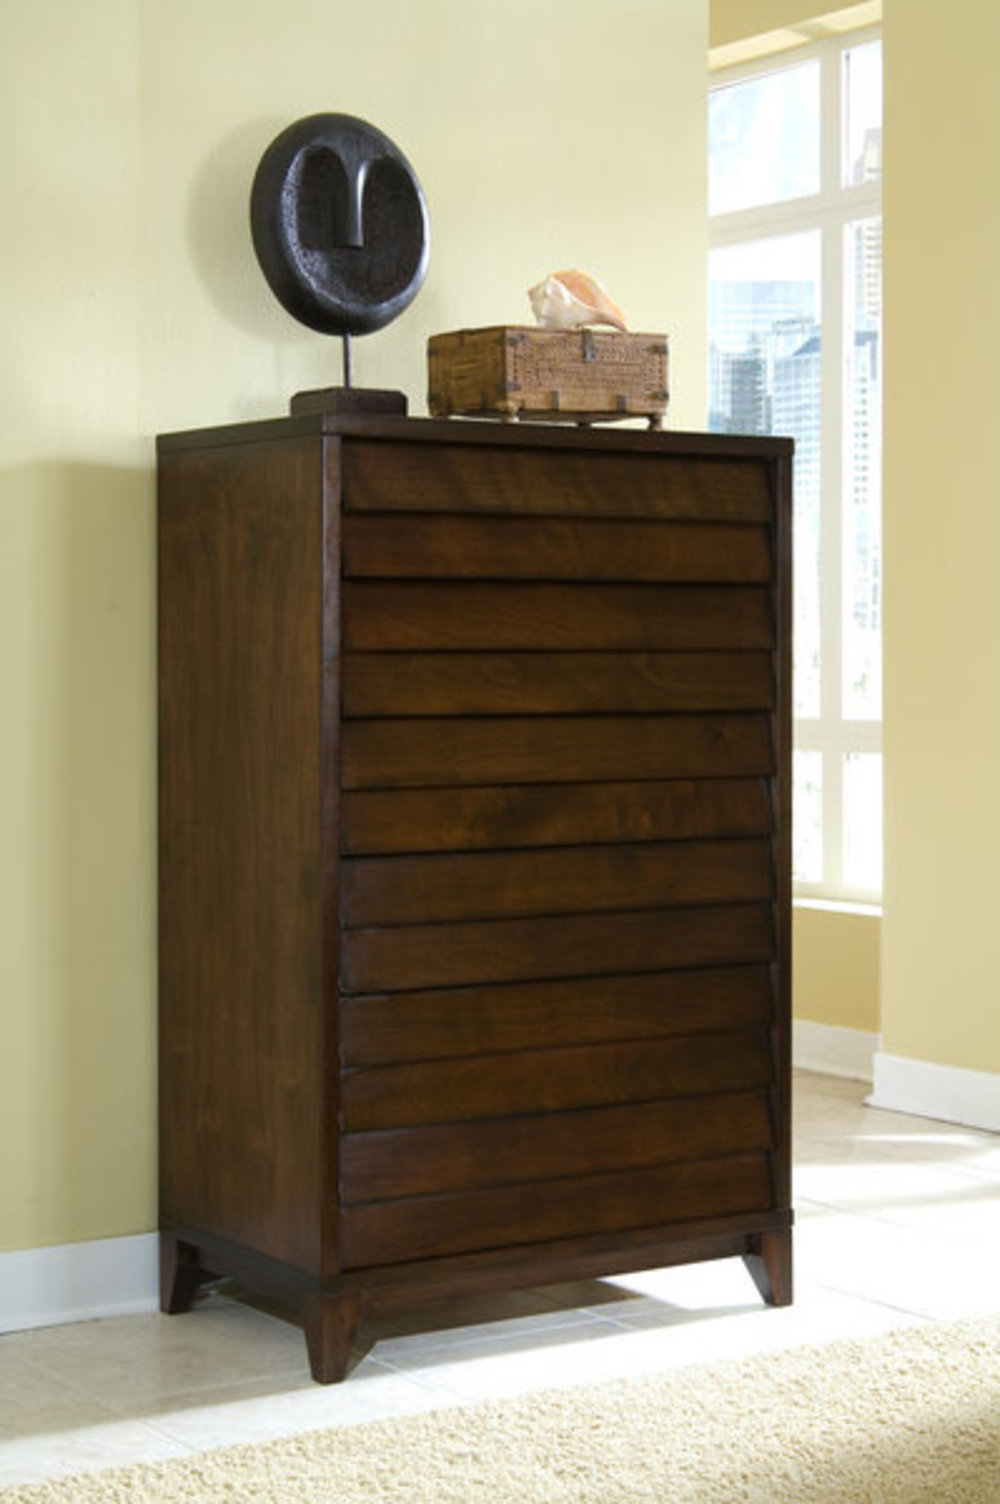 Ligna Furniture - Six Drawer High Chest